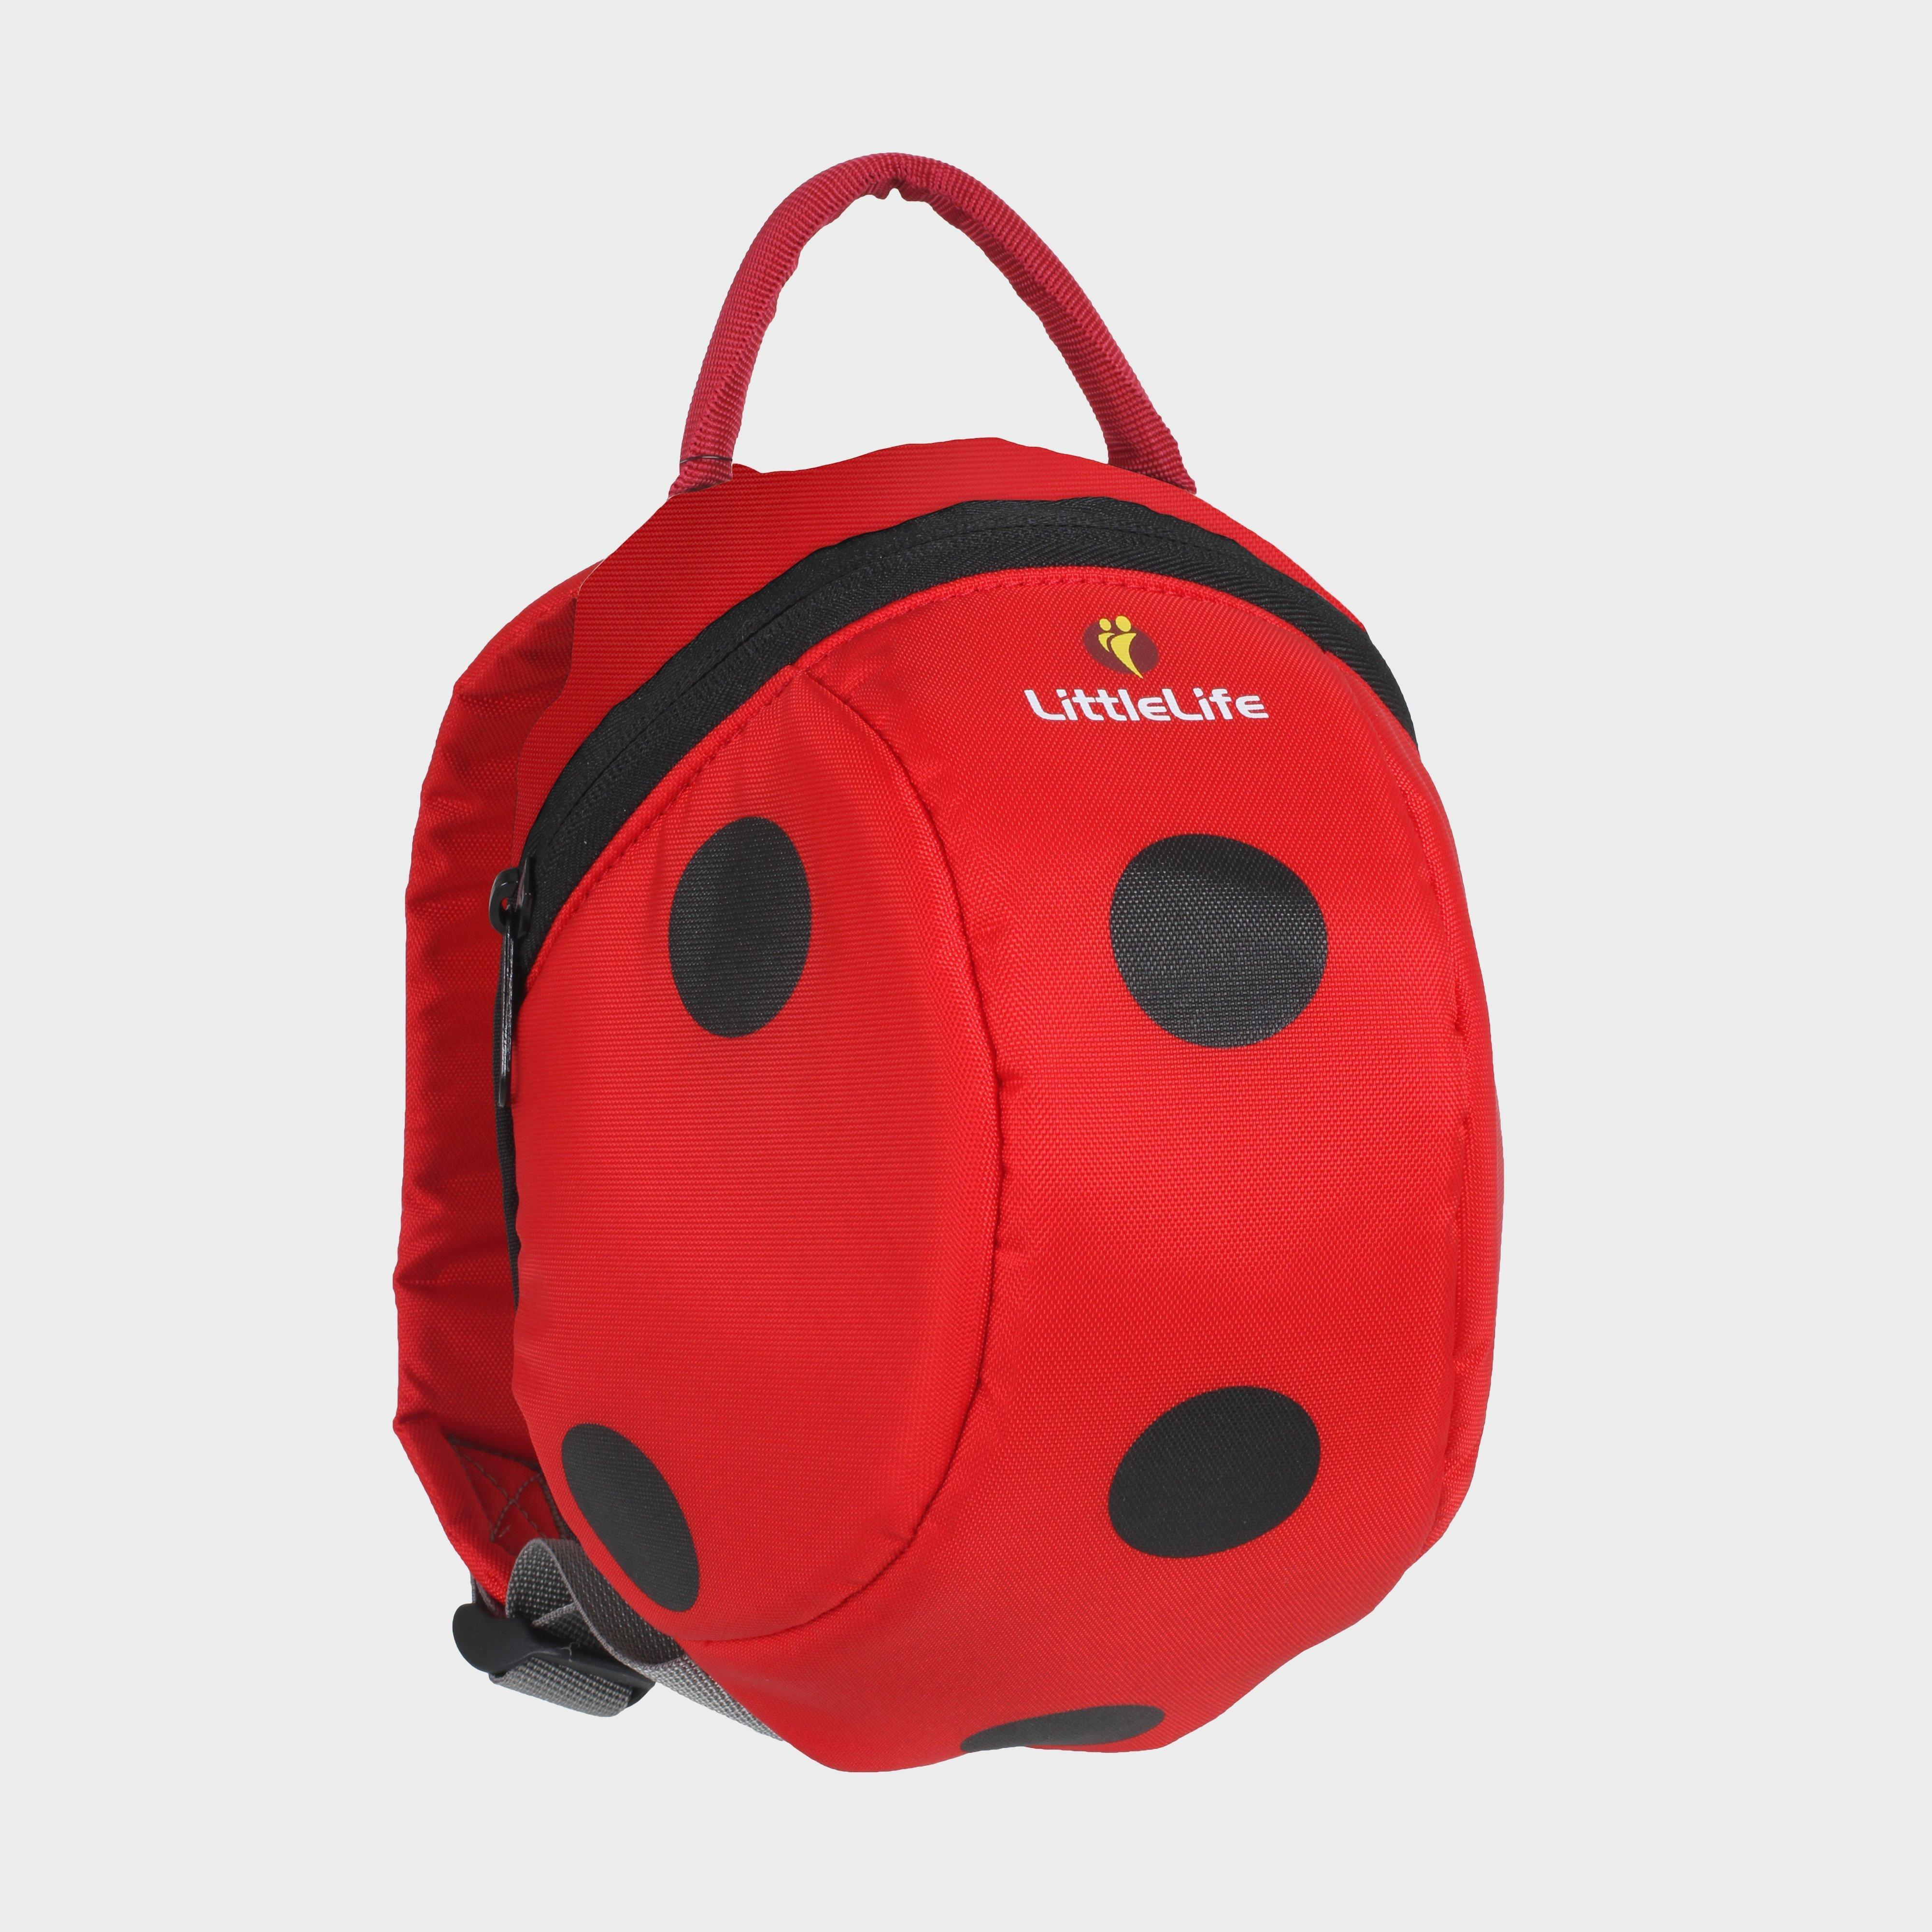 Littlelife Littlelife Ladybird Toddler Pack with Rein - Red, Red